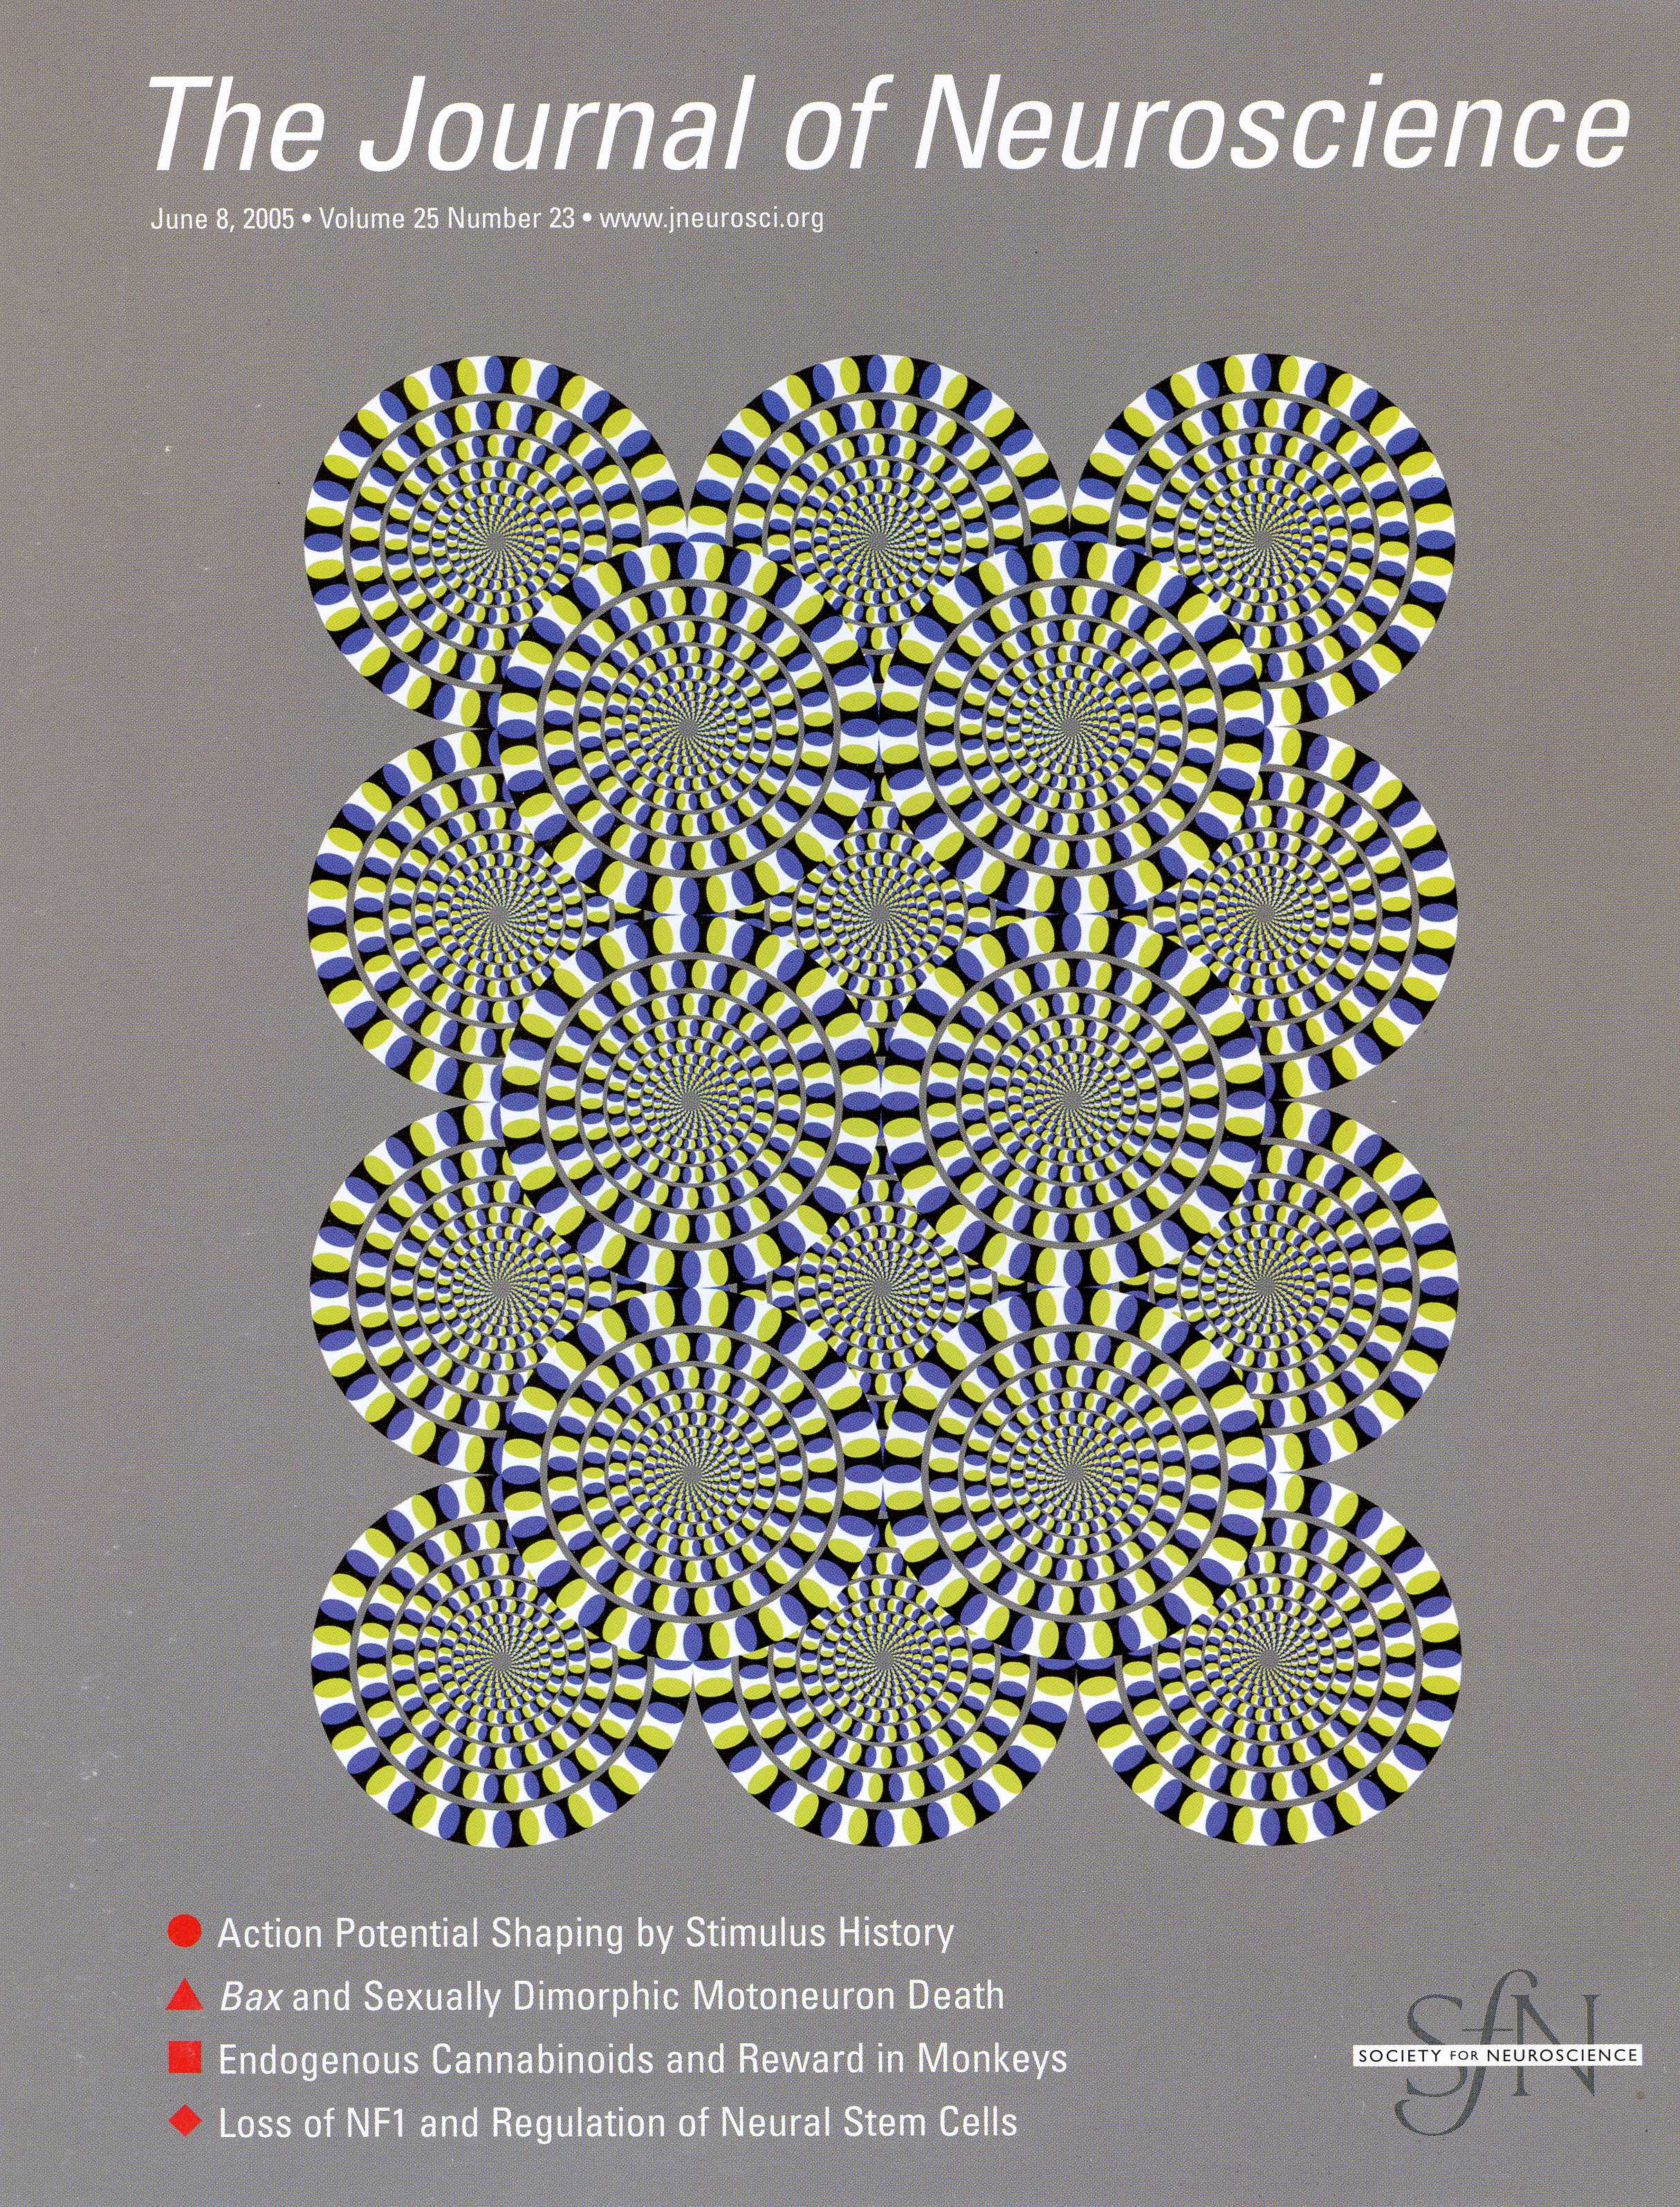 The dress journal of vision -  Yazdanbakhsh A Pack Cc Livingstone Ms 2005 Neural Basis For A Powerful Static Motion Illusion Journal Of Neuroscience 25 23 5651 5656